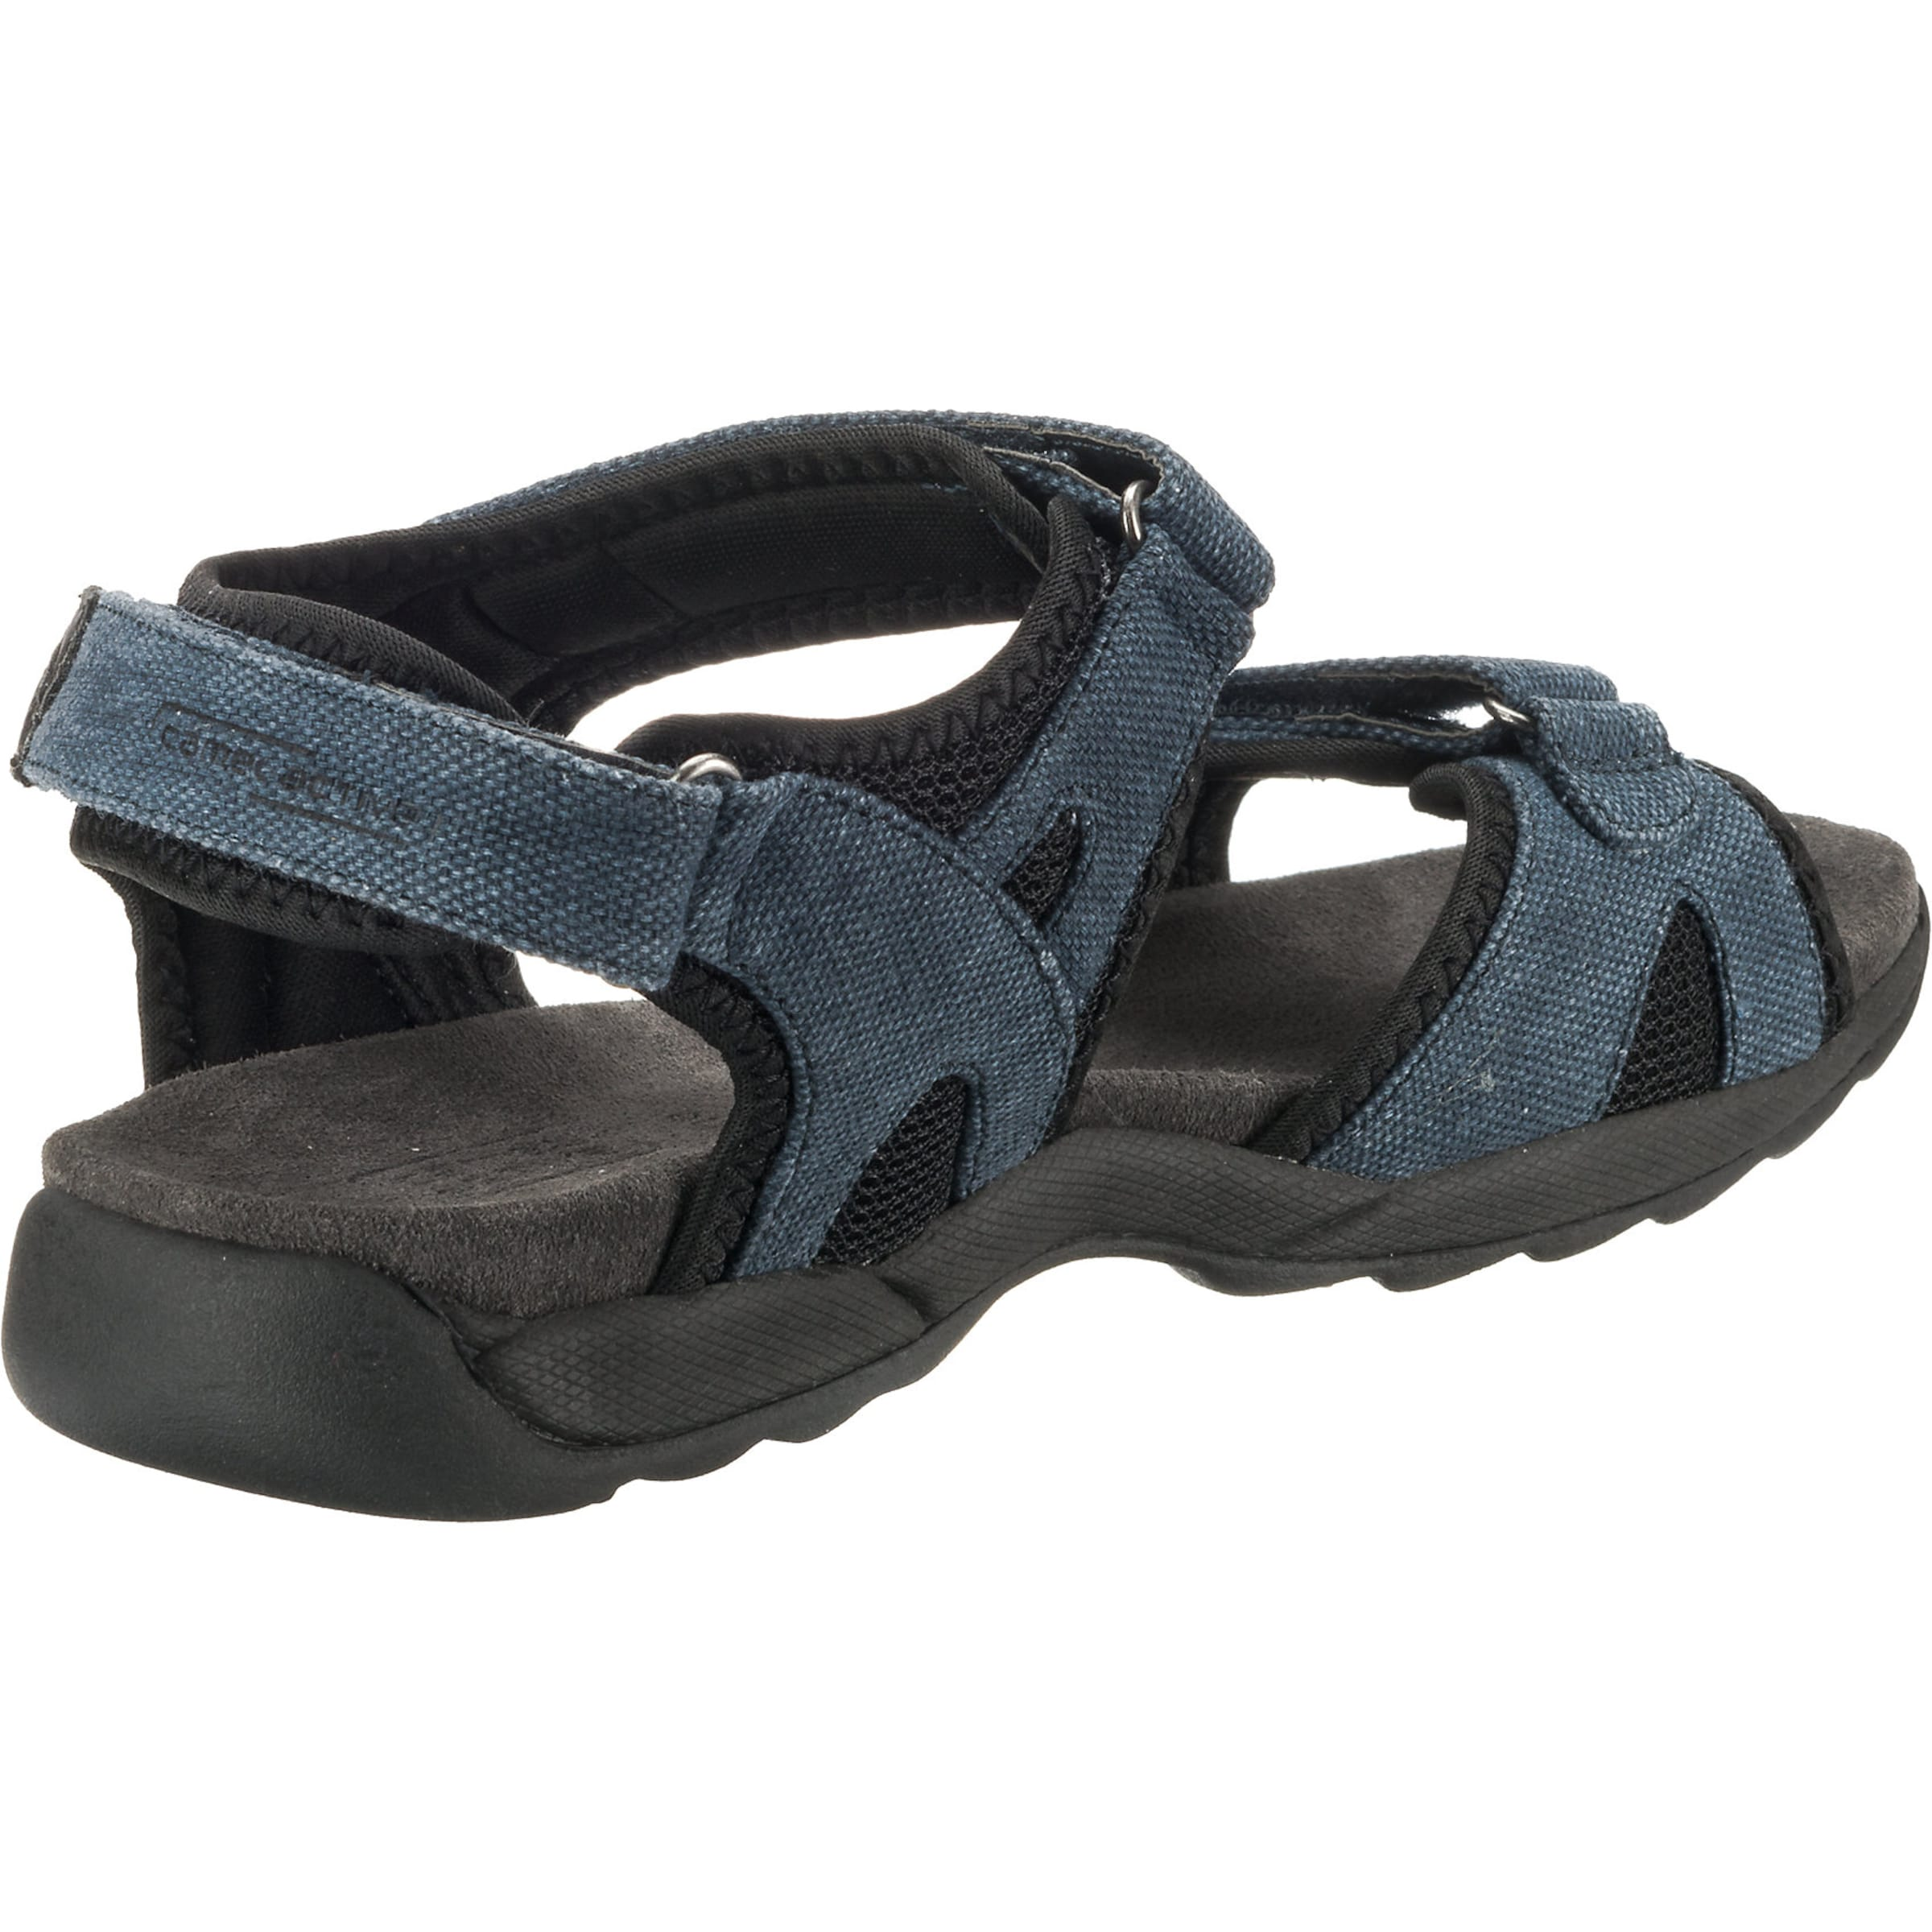 In Blau Active 72' Outdoorsandalen Camel 'suez PkuZXi